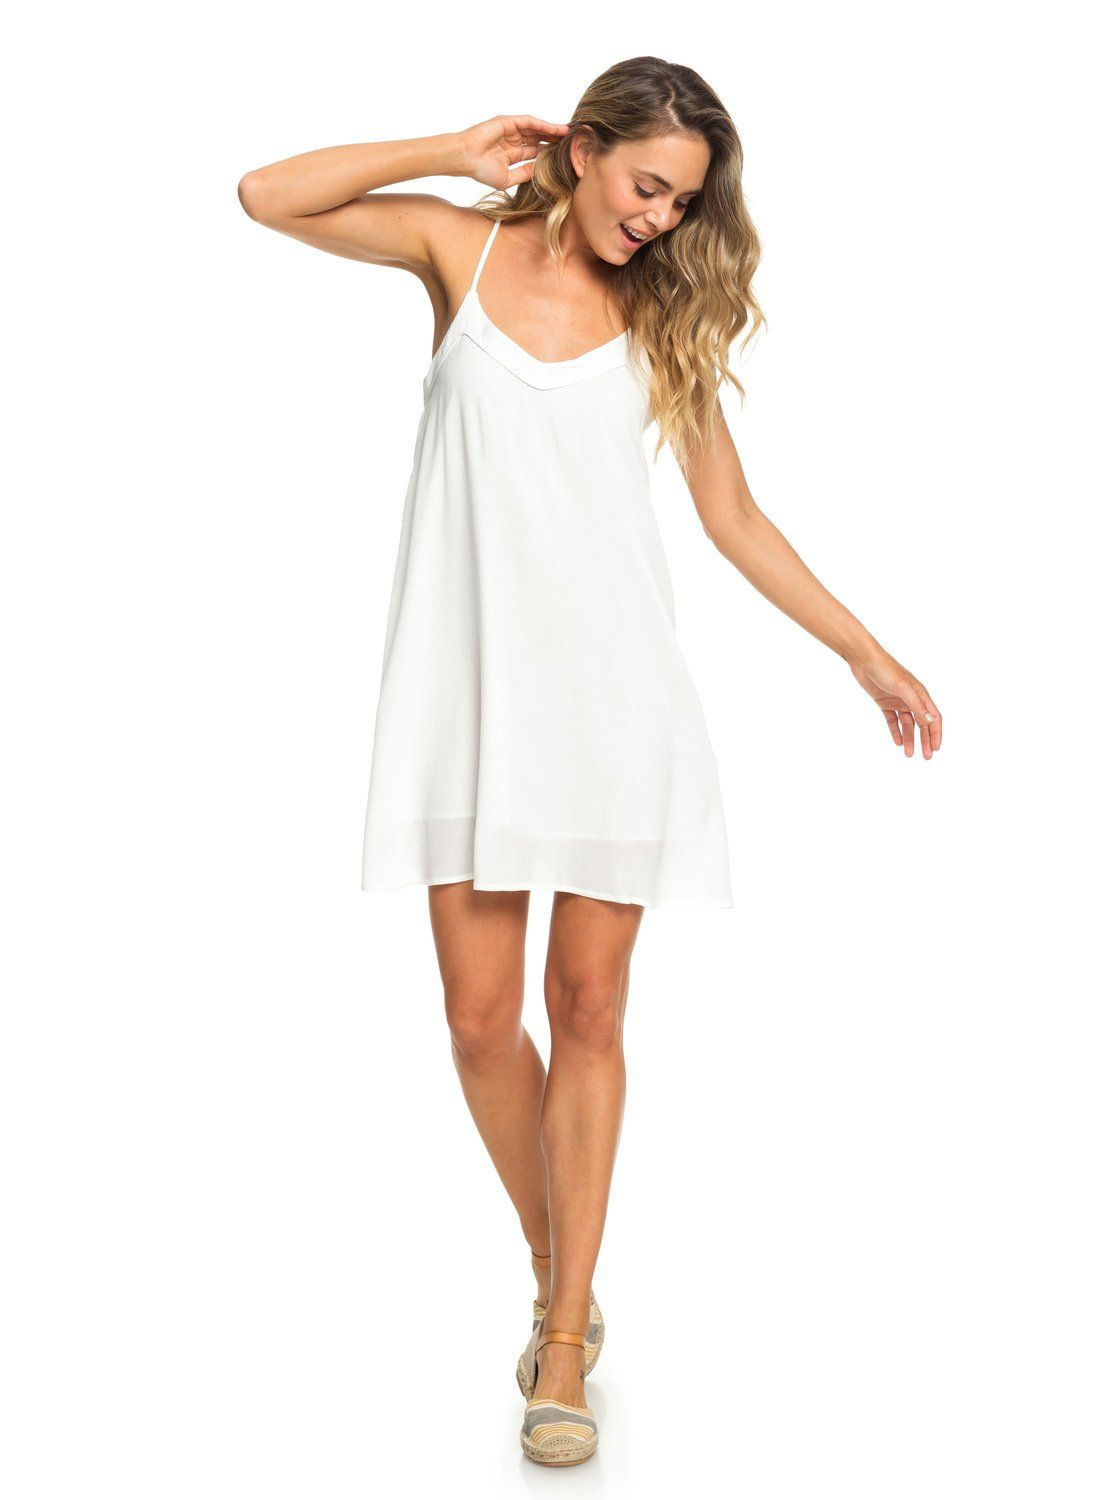 Off We Go Strappy Dress 191274999791 In 2021 Strappy Dresses Casual White Dress Dresses [ 1500 x 1117 Pixel ]